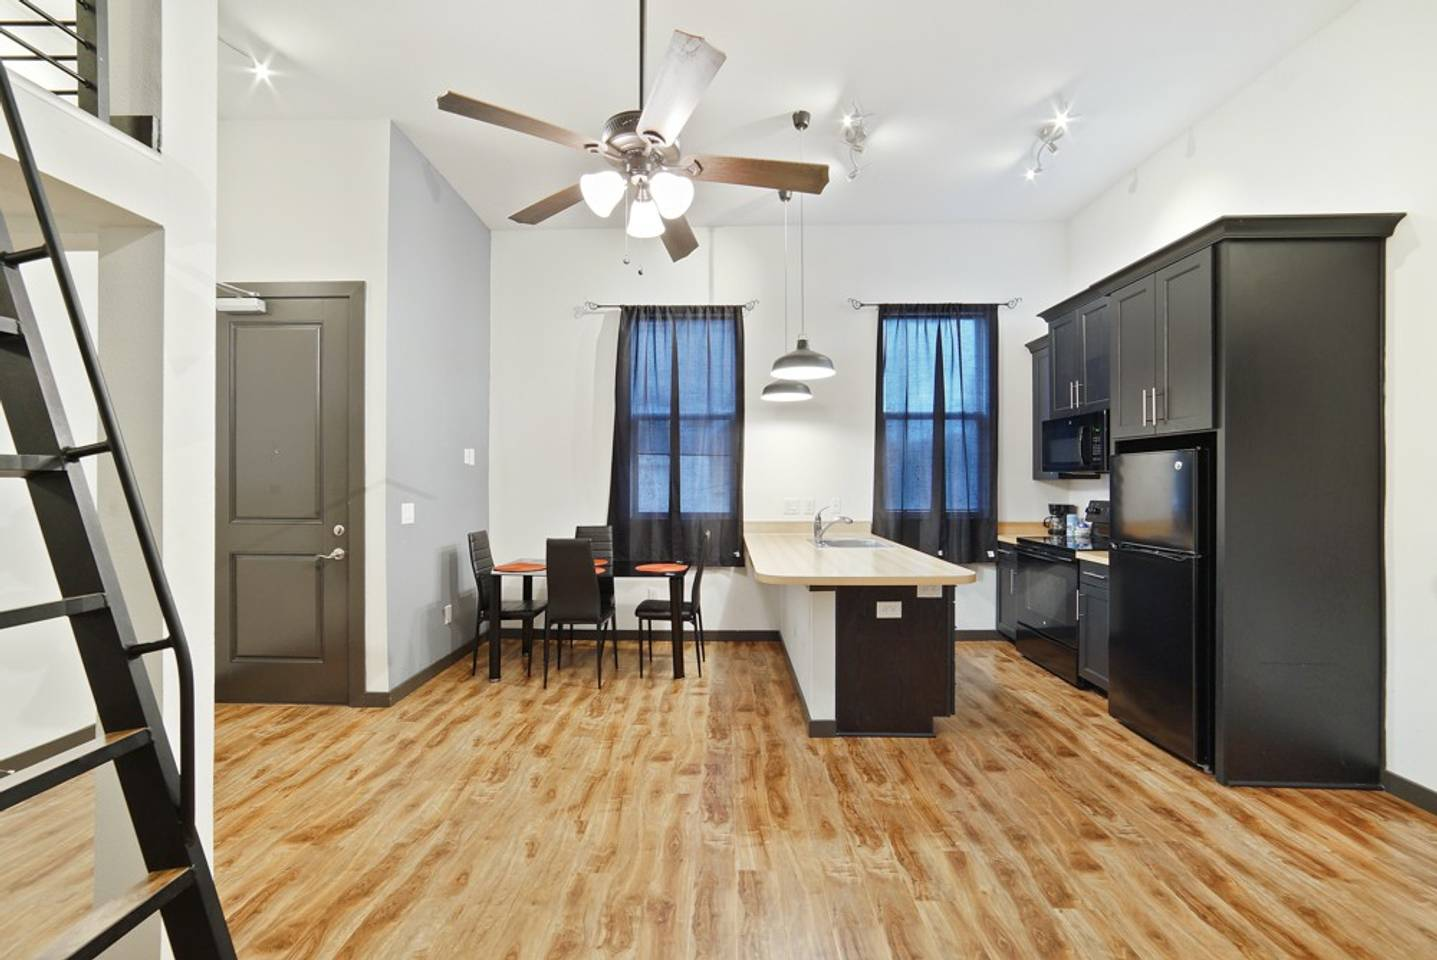 Loft Style Living in Downtown Tampa #103 photo 19380848